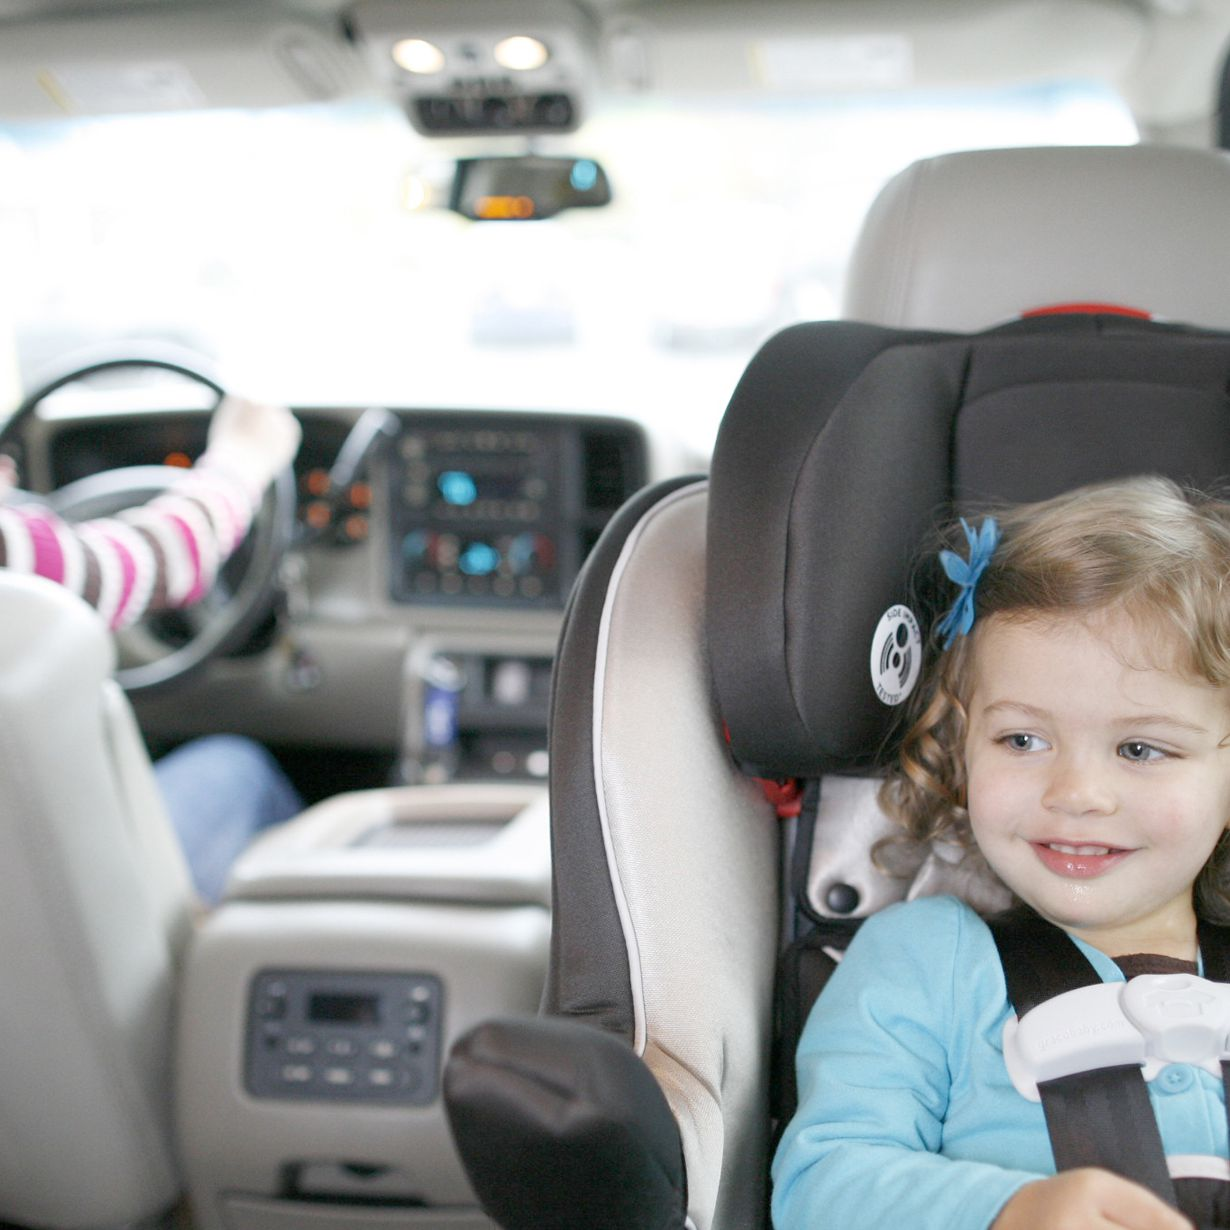 Keeping Your Baby In A Rear Facing Car Seat, What Age Do You Stop Using A Car Seat Uk